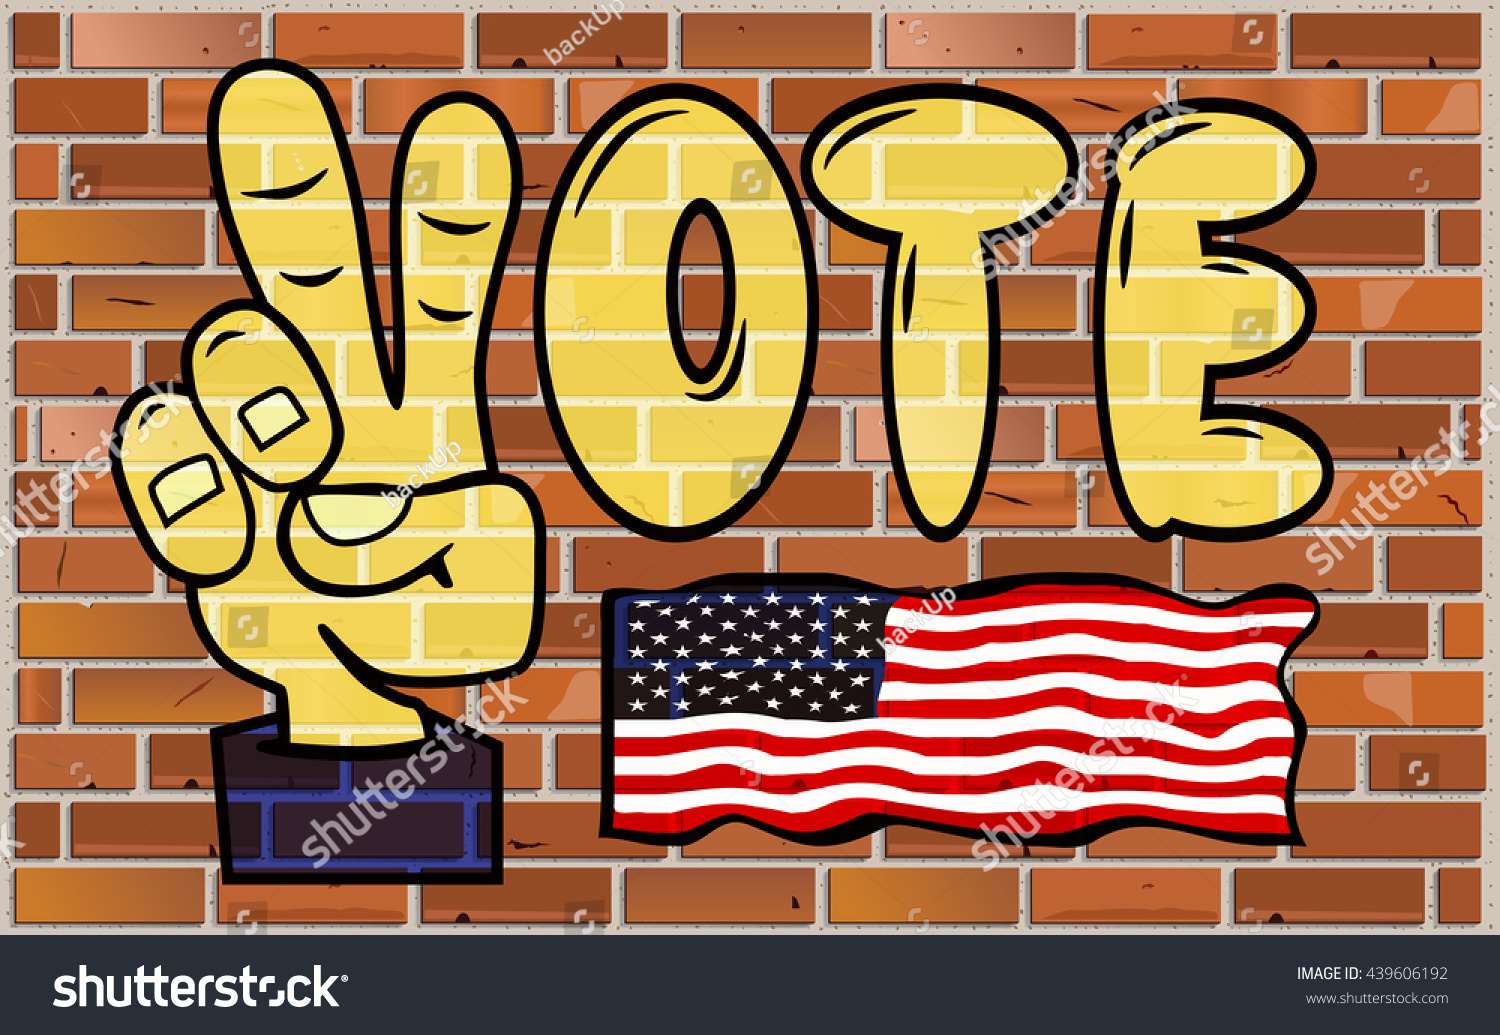 Graffiti VOTE Word On Brick Wall Stock Illustration 439606192 ...